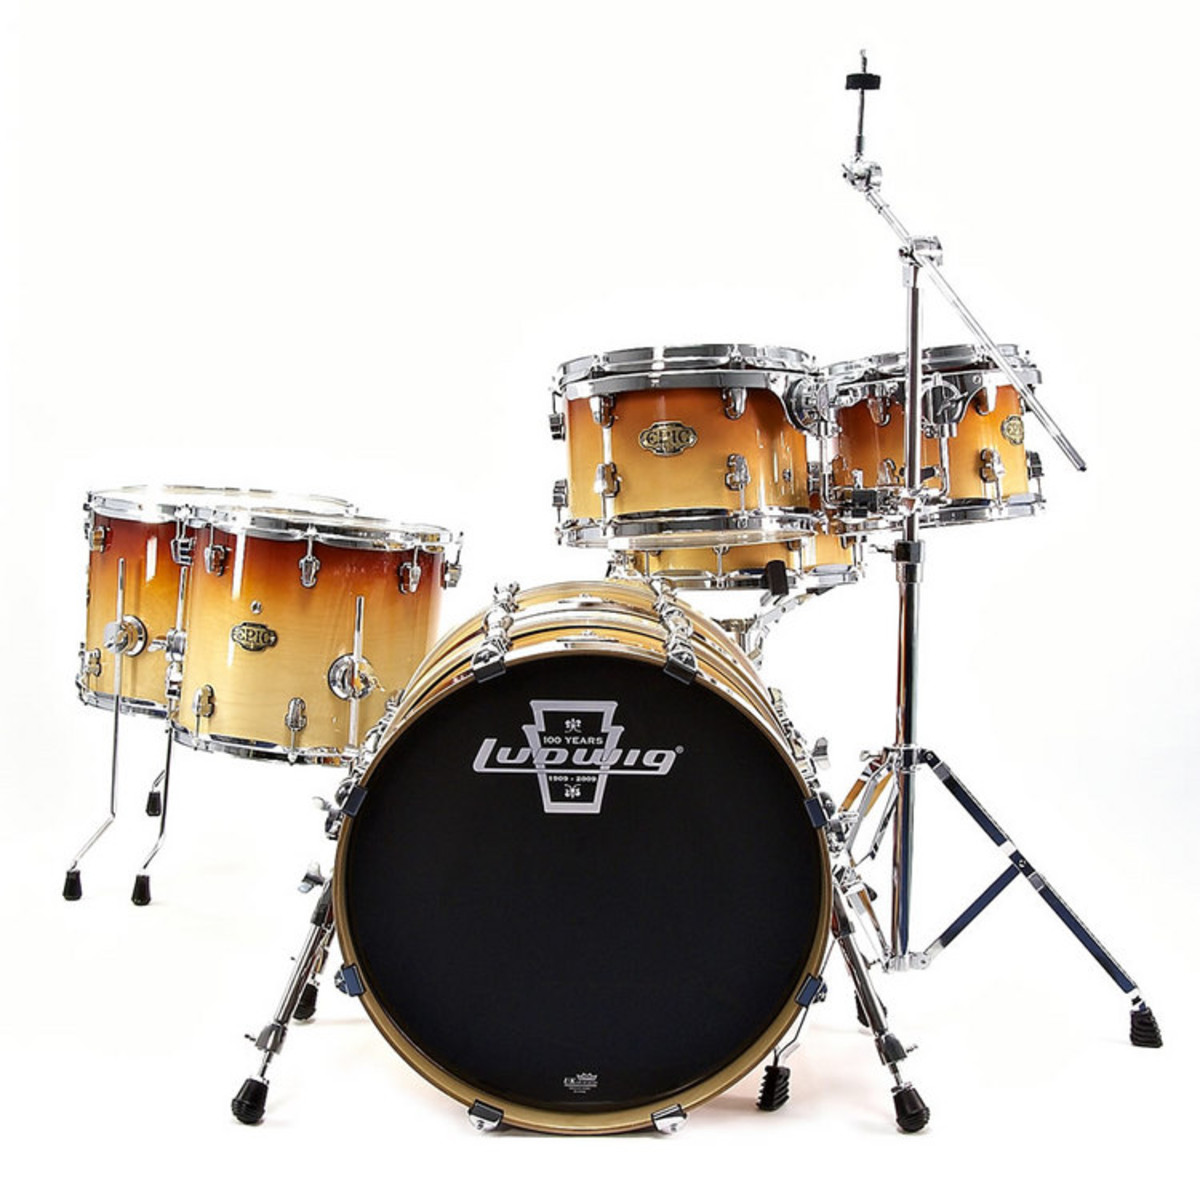 ludwig epic modular drum kit in tobacco fade at gear4music. Black Bedroom Furniture Sets. Home Design Ideas